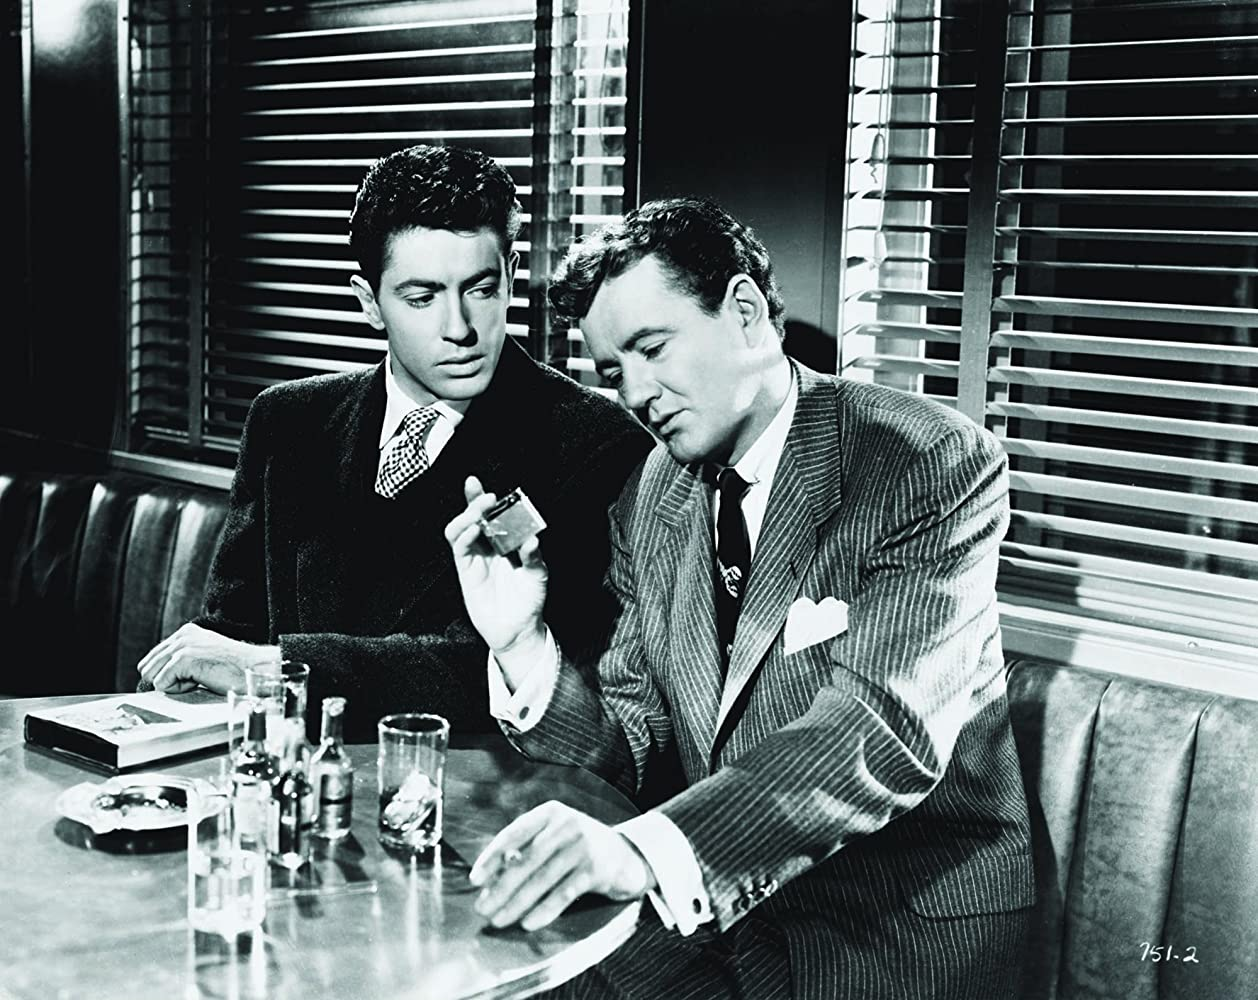 Farley Granger and Robert Walker in Strangers on a Train (1951)